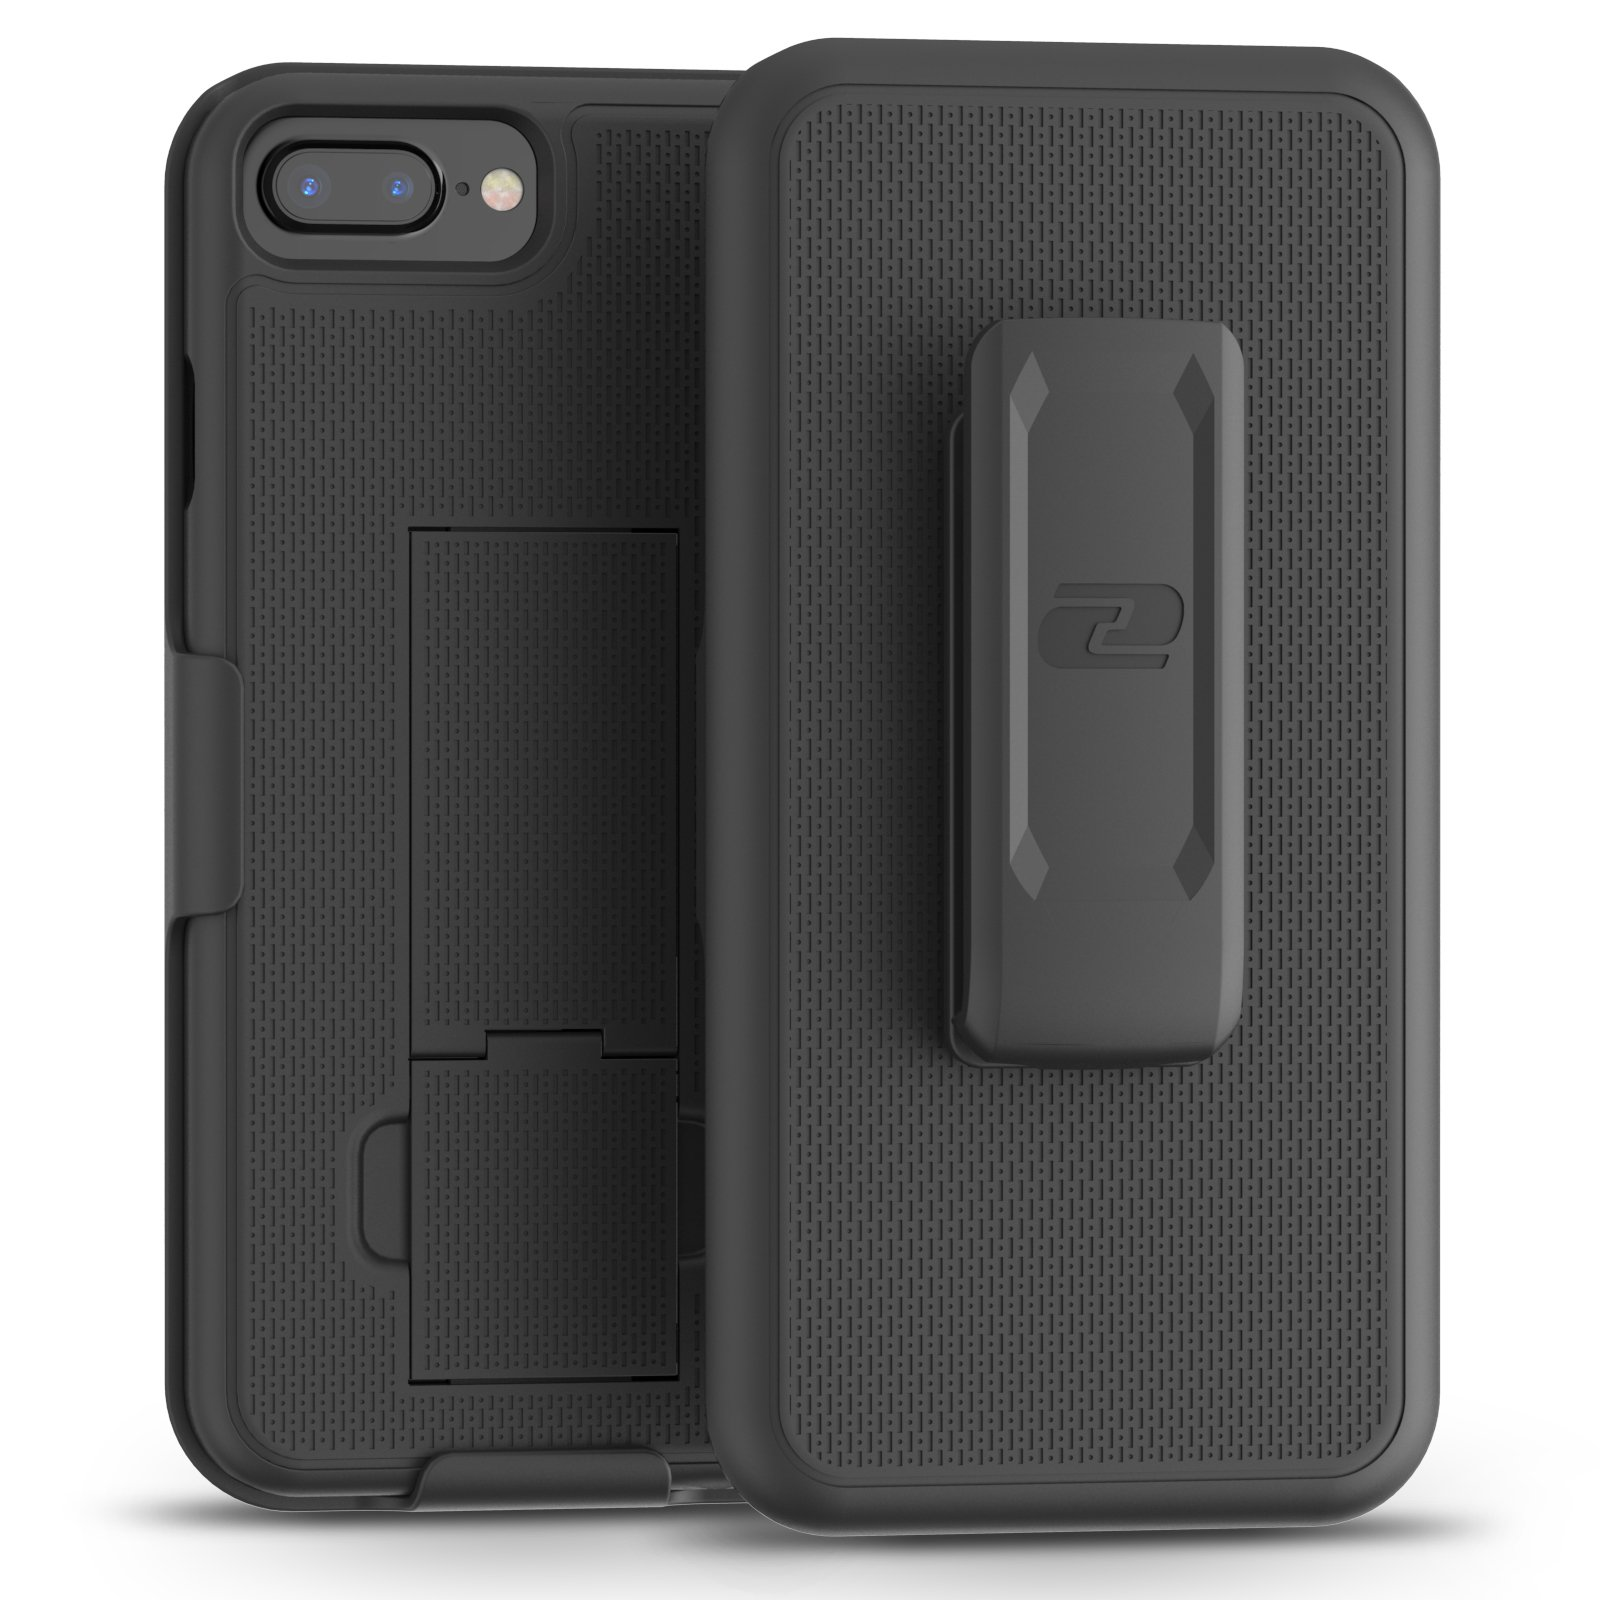 Encased DuraClip for iPhone 8 Plus Belt Clip Case, Thin Fit Holster Shell Combo Slim Cover with Rubberized Grip for Apple iPhone 8 Plus 5.5'' (Black)